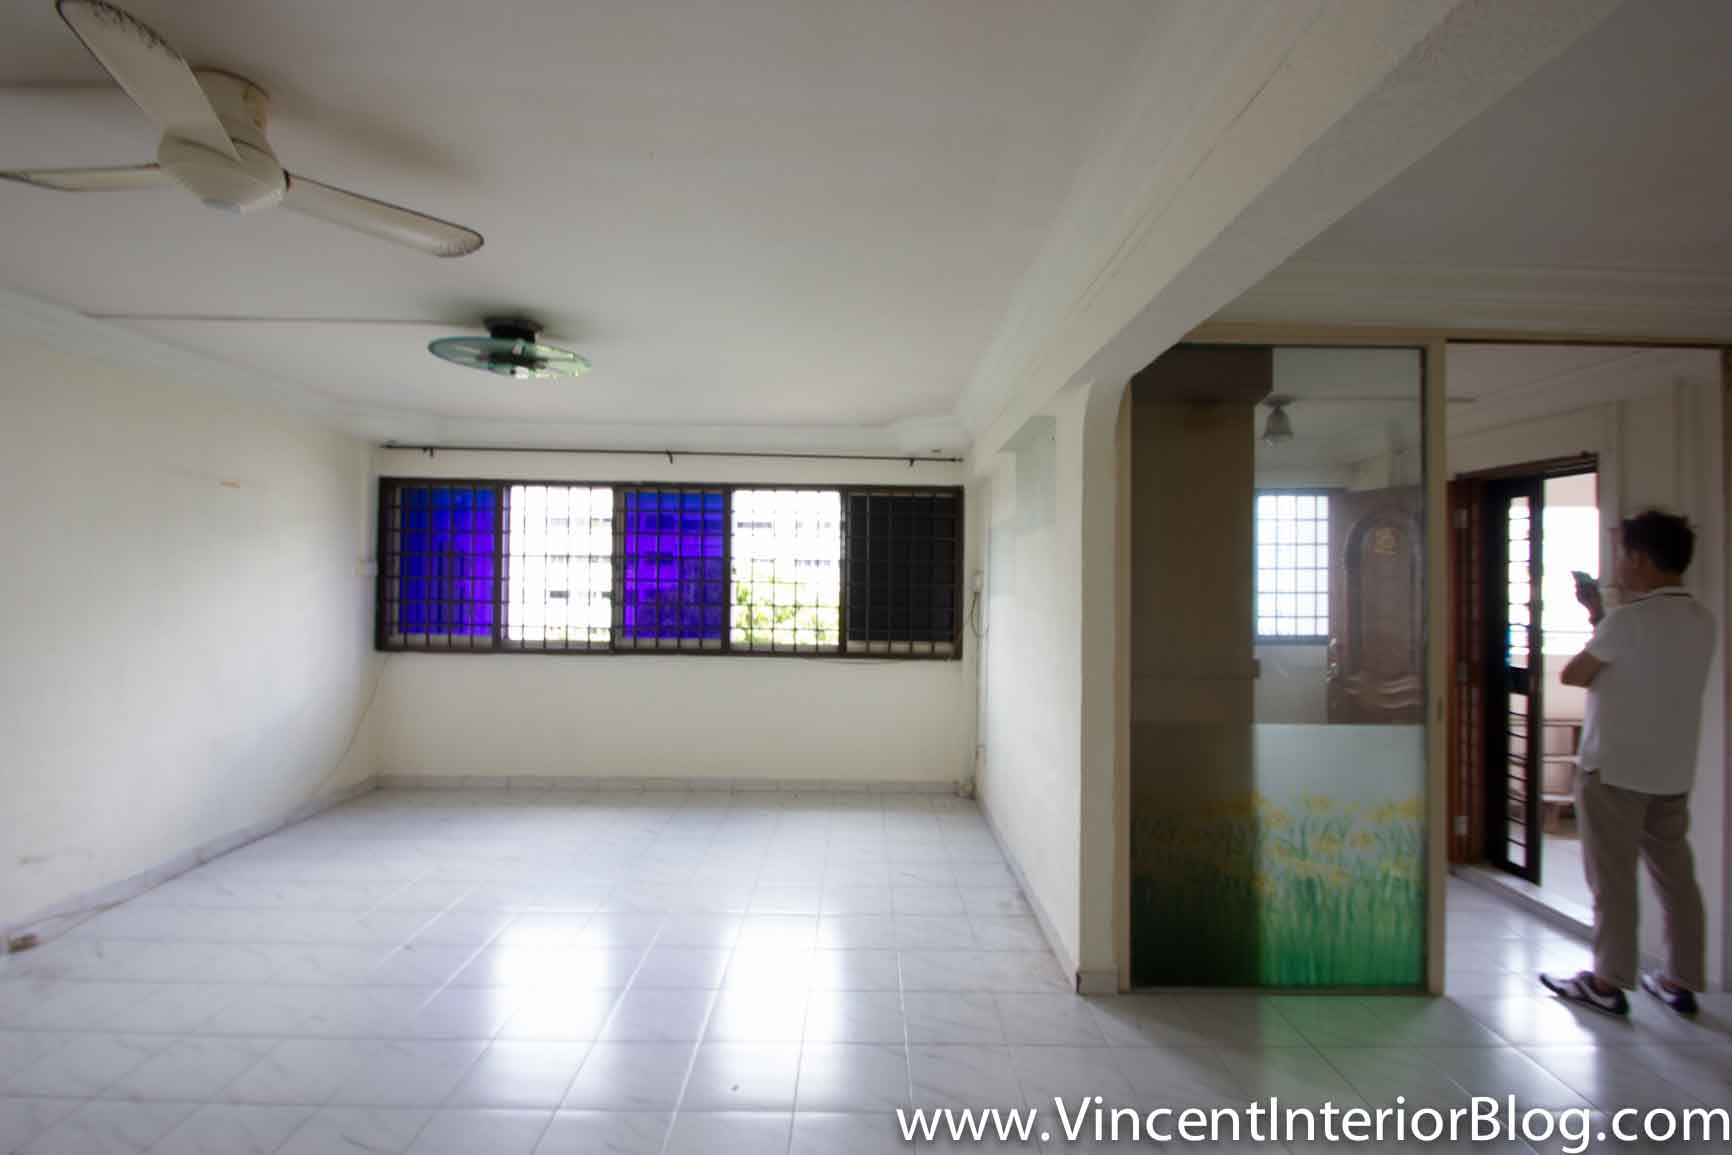 5 room hdb yishun living room 9 vincent interior blog for Interior design 5 room hdb